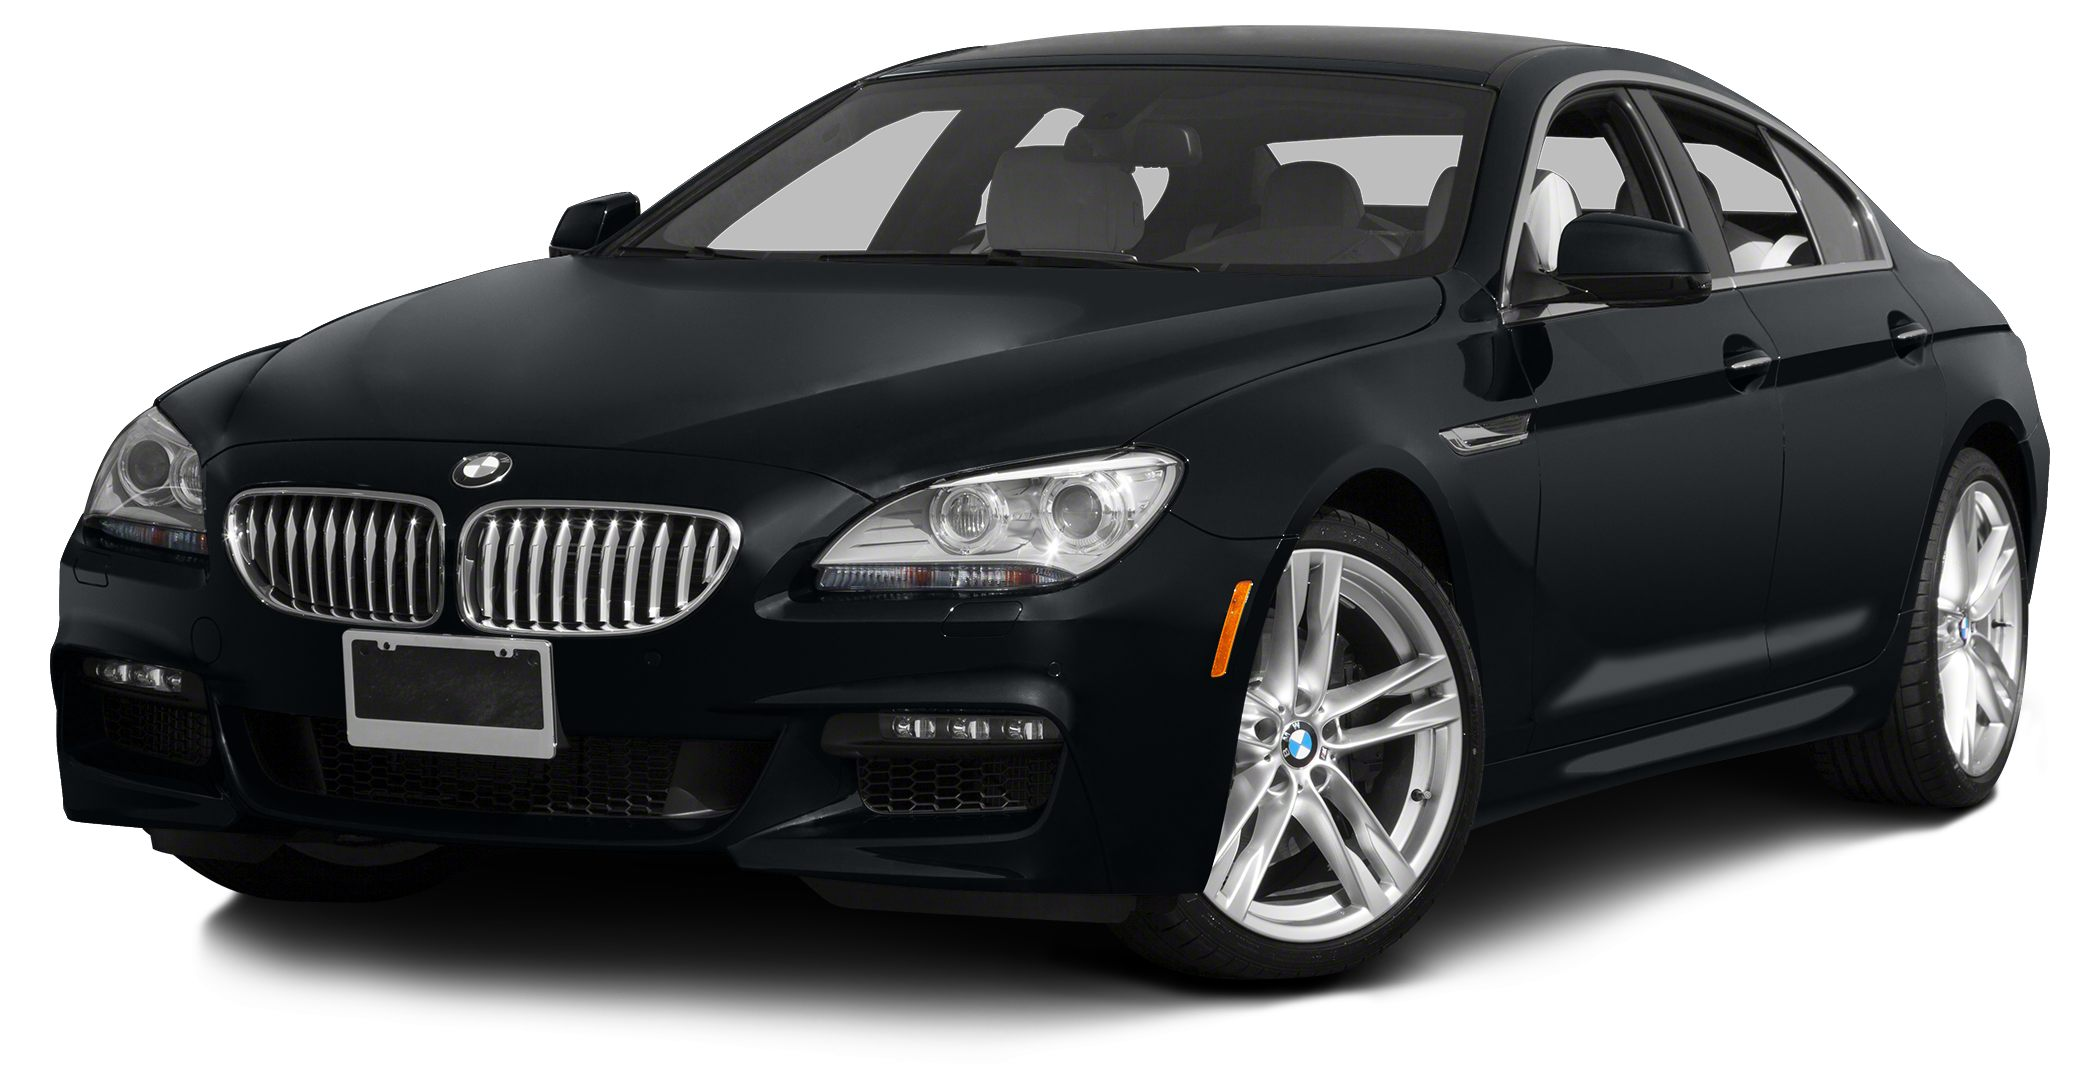 2013 BMW 6 Series 640i Gran Coupe 1 OWNER  CLEAN CARFAX REPORT  New Inventor